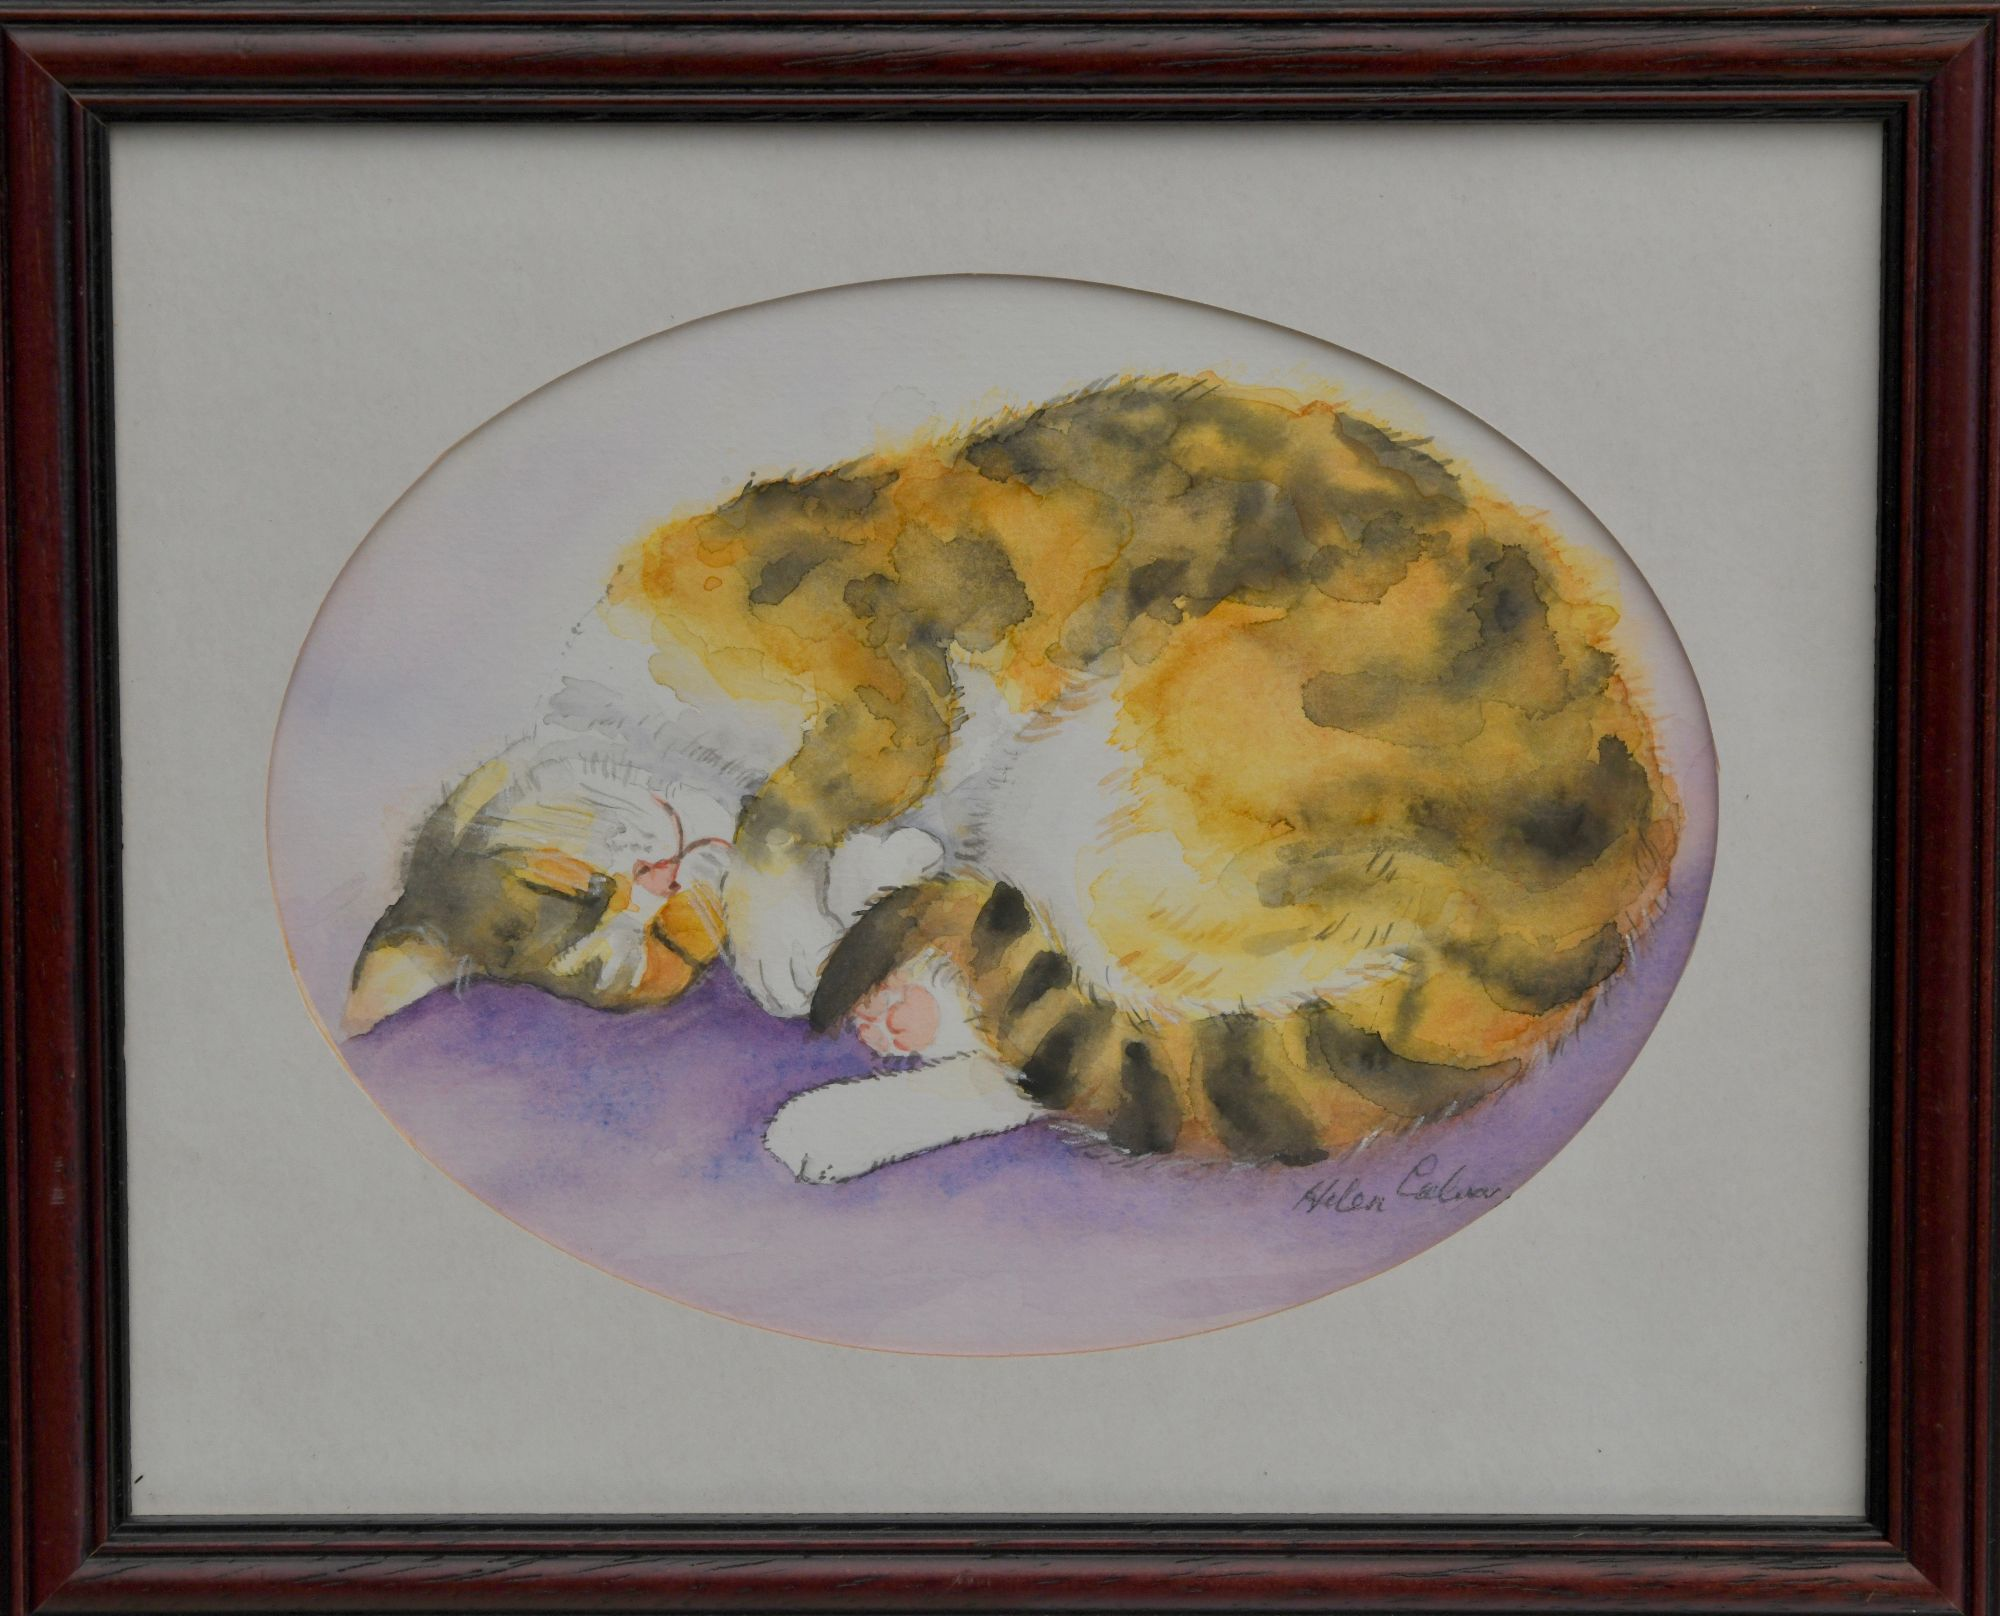 Cat Nap   ________________________________ watercolour on paper,  moulded brown wood frame with glass  (22cm x 28cm x 2cm)           £35